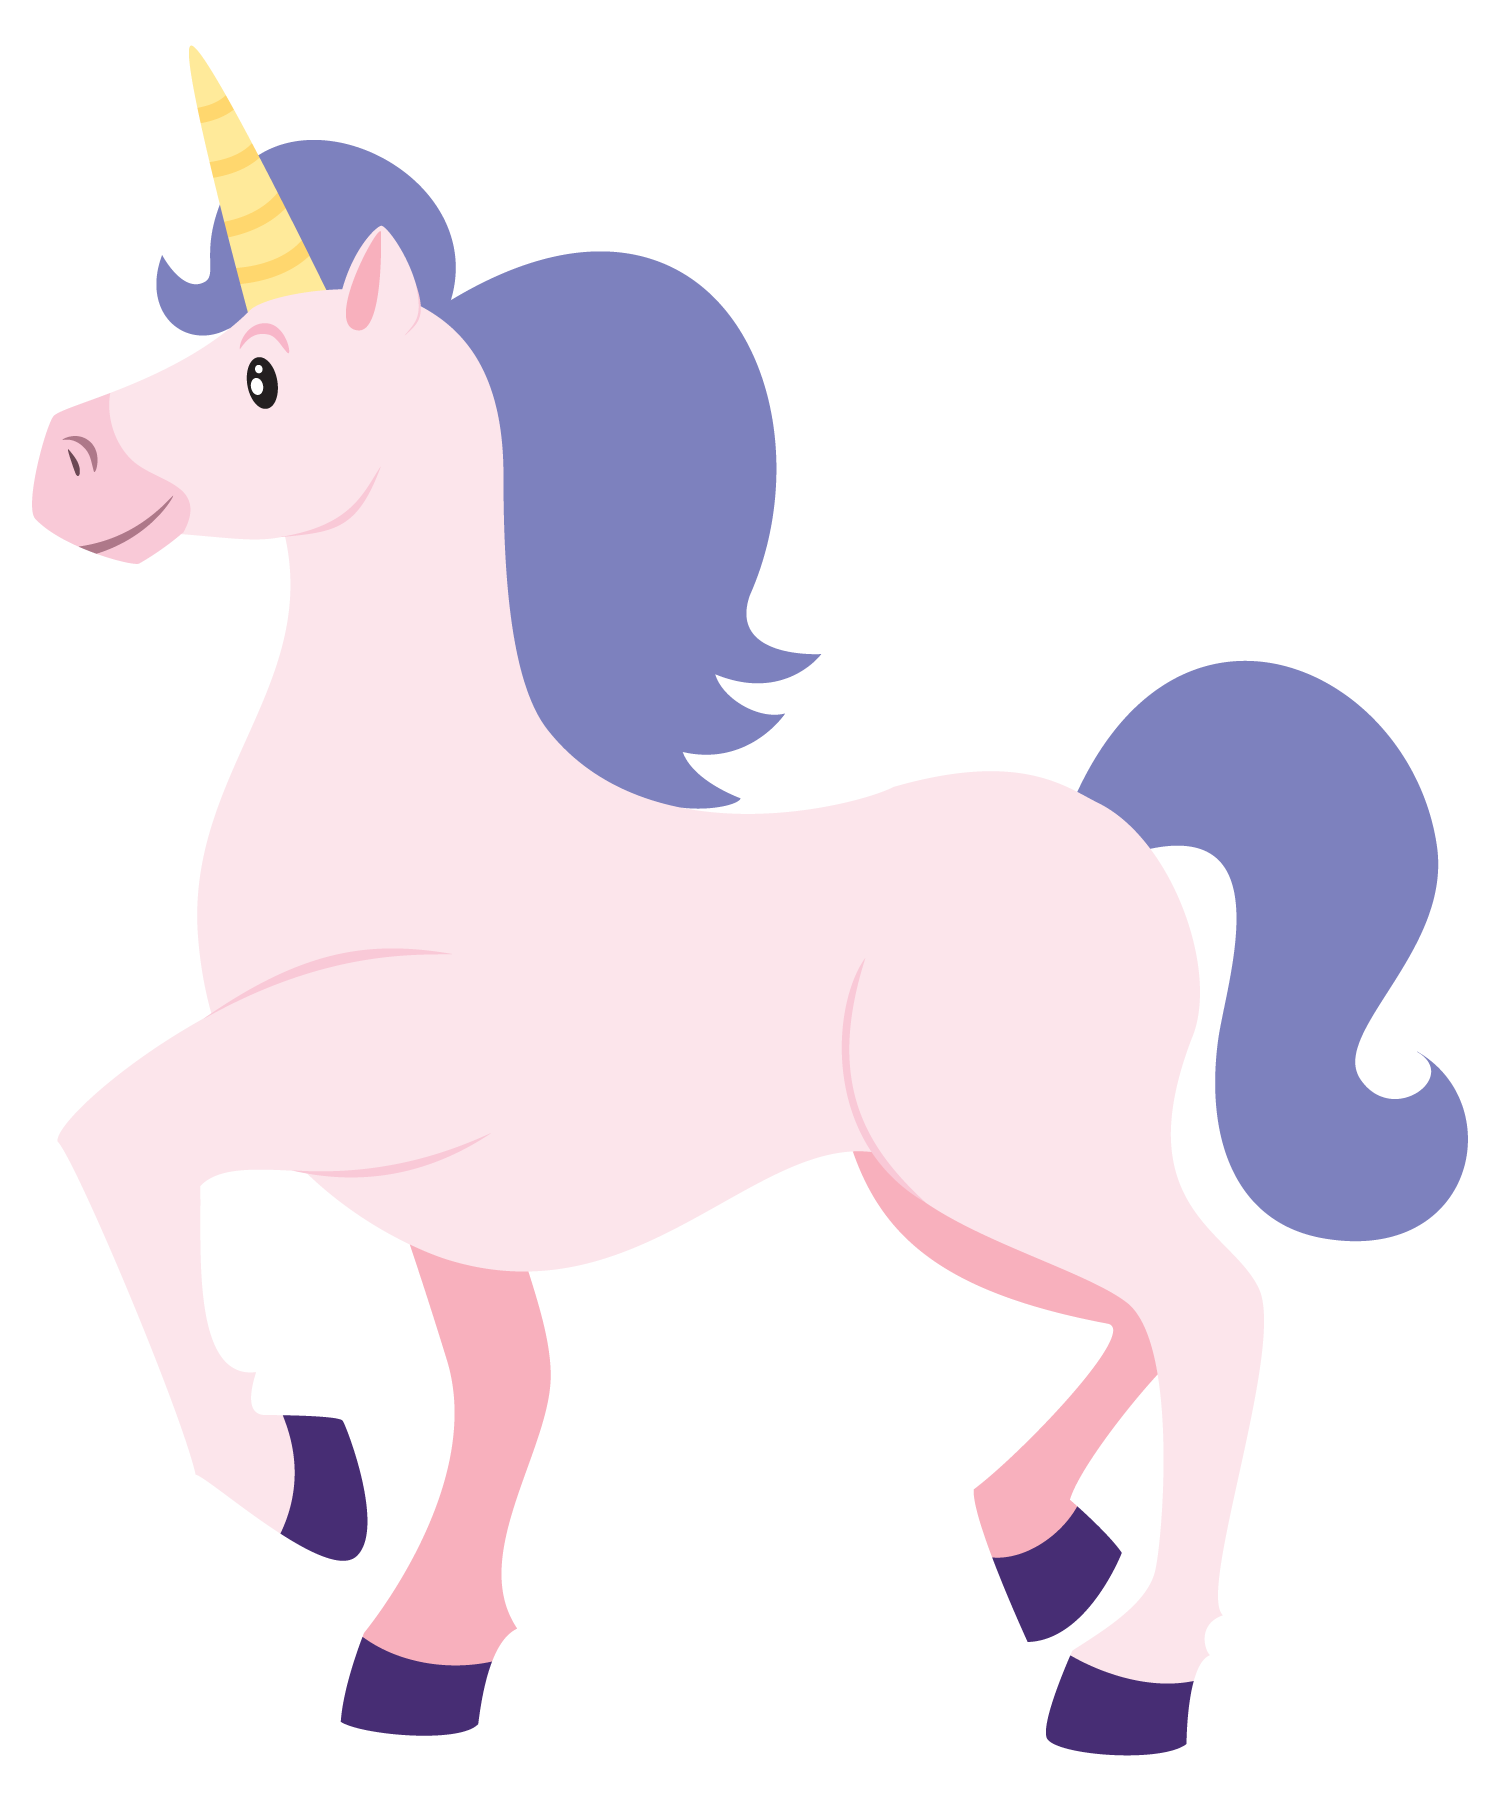 12 Unicorn Cartoon Free Cliparts That You Can Download To You